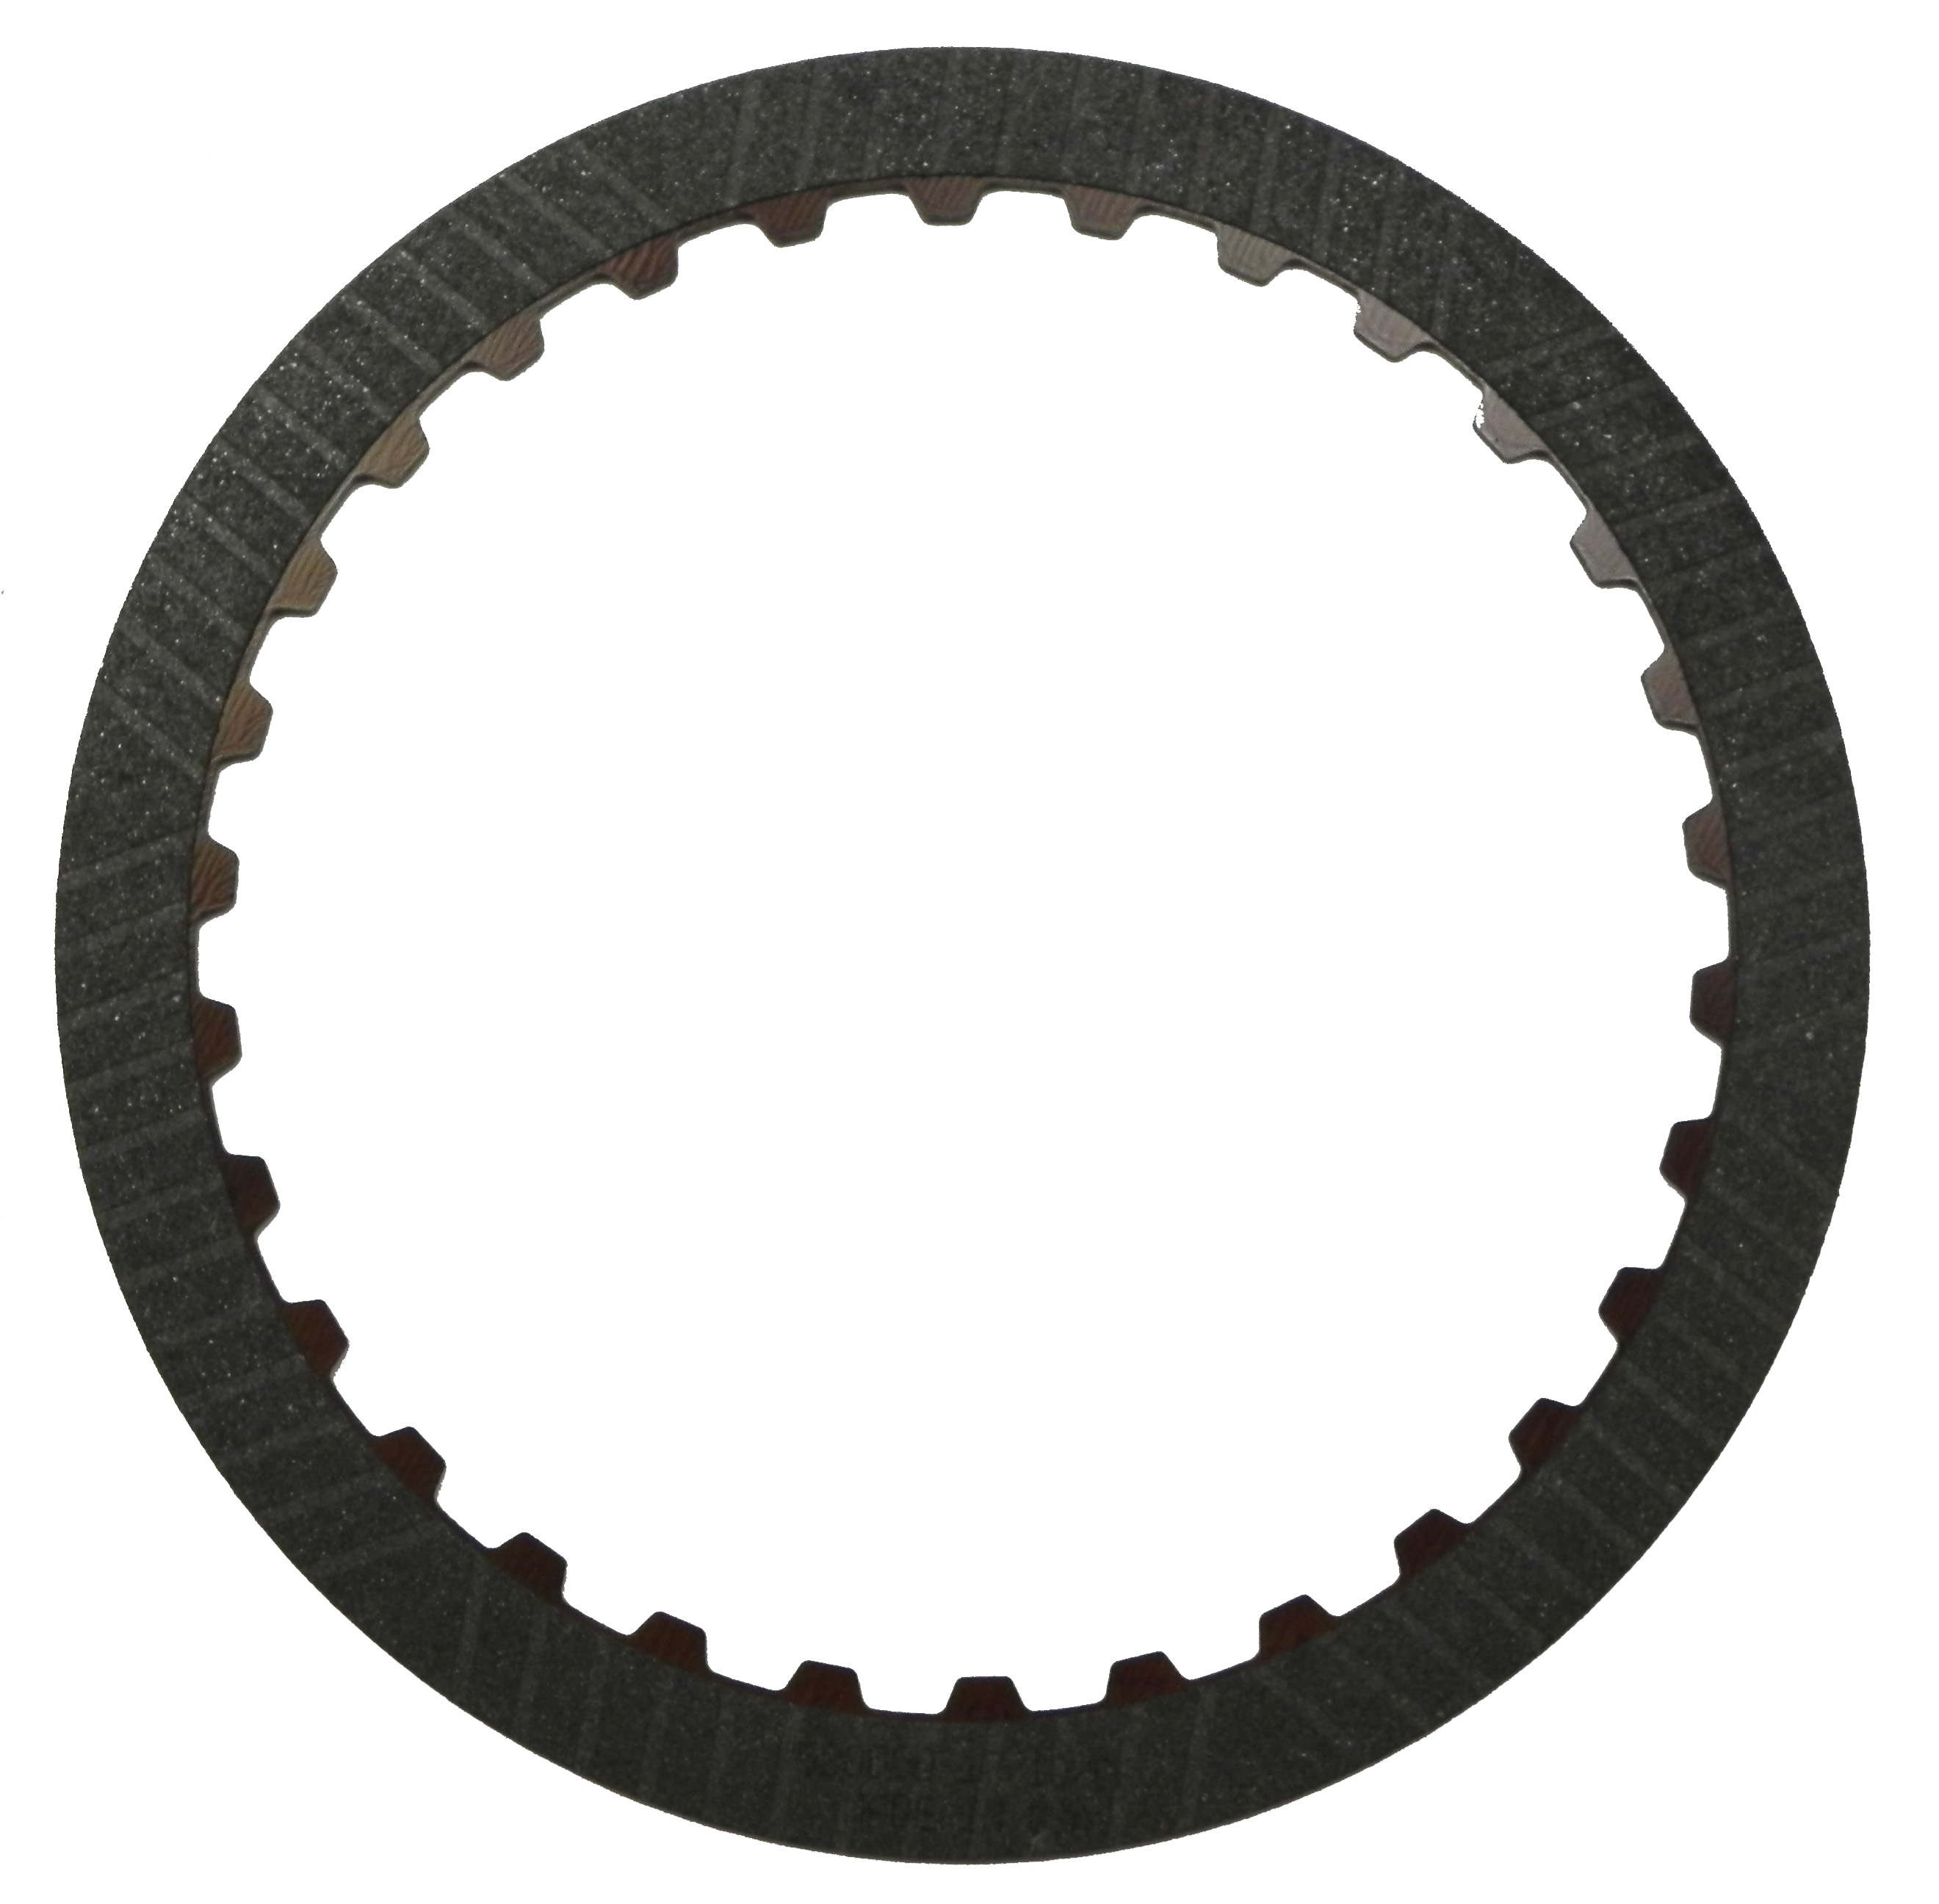 R520000 | 2005-ON Friction Clutch Plate High Energy Forward High Energy